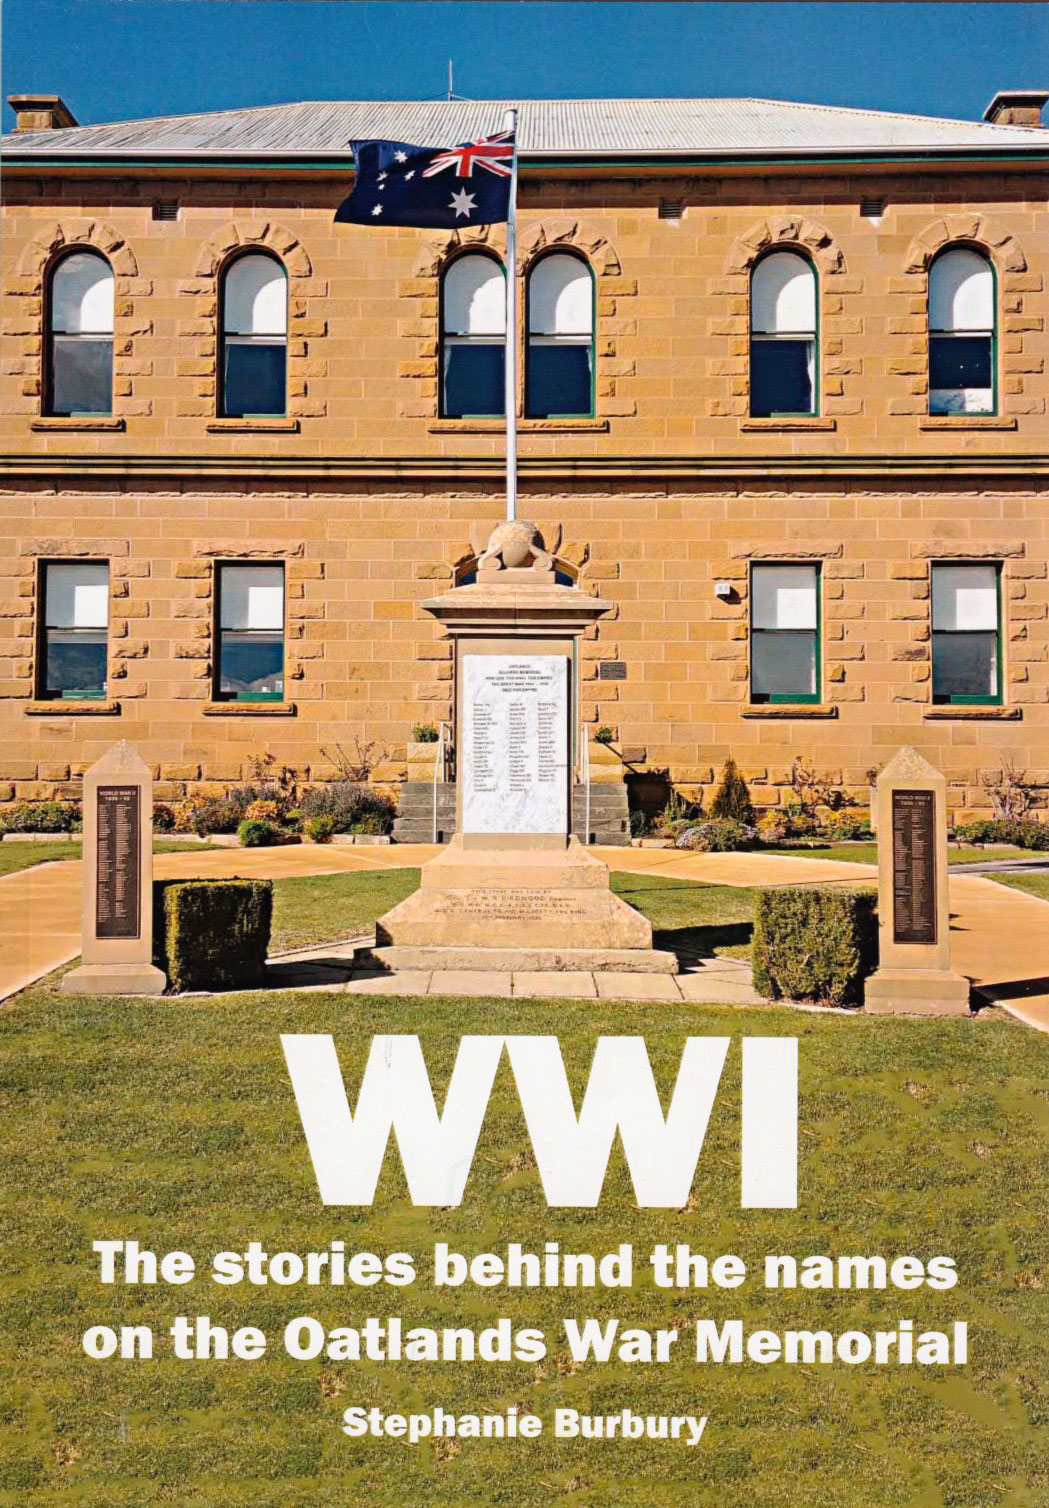 Stories Behind the Names on the Oatlands War Memorial